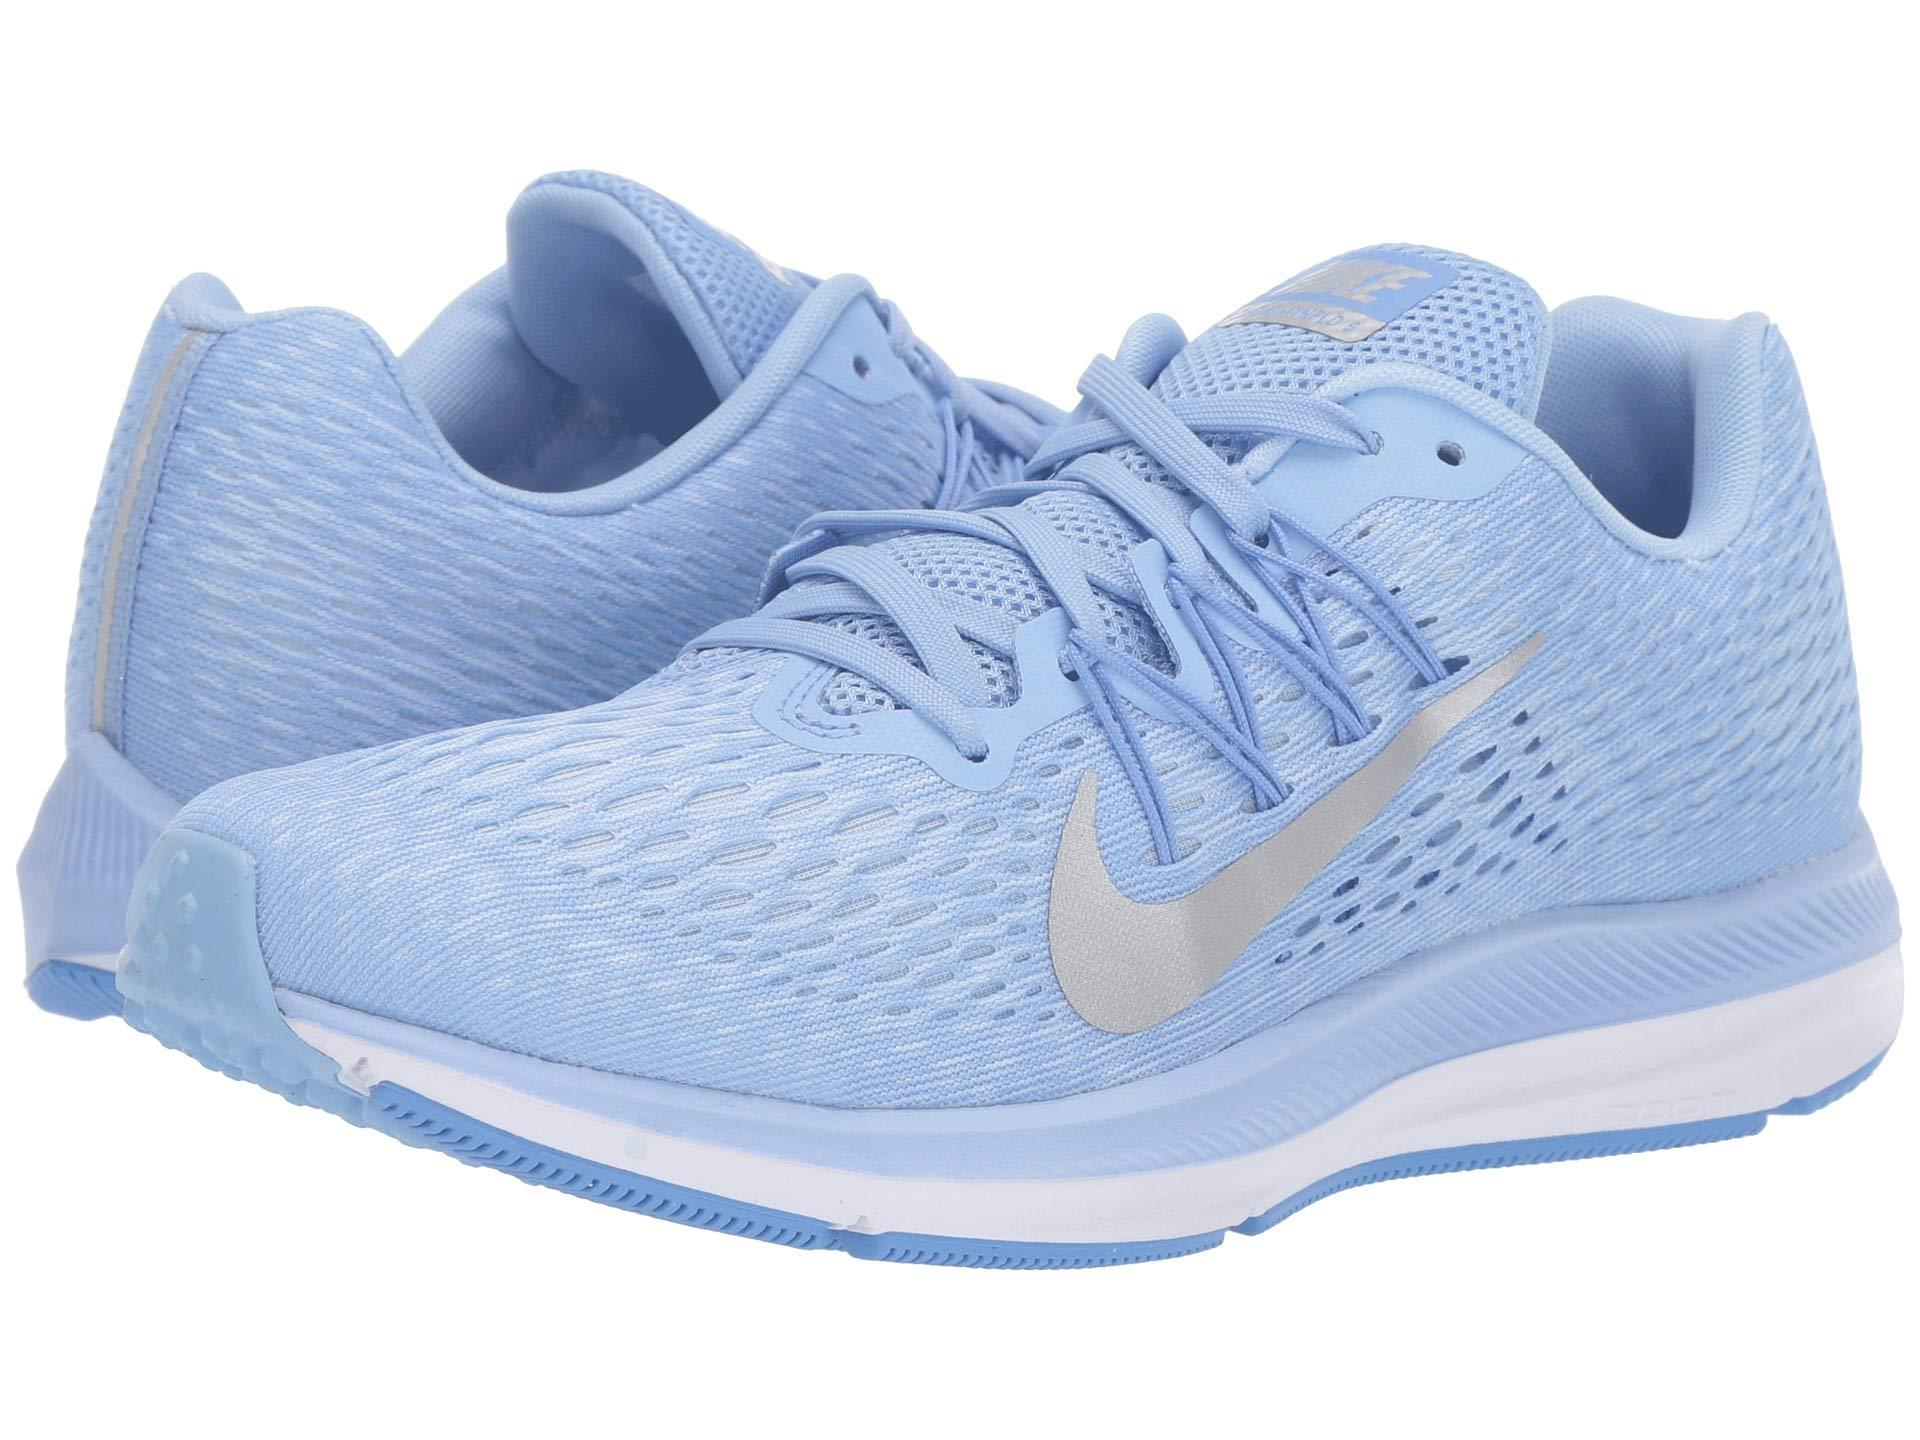 newest 9e30f 2384a Blue Air Zoom Winflo 5 (vast Grey/black/atmosphere Grey) Women's Running  Shoes